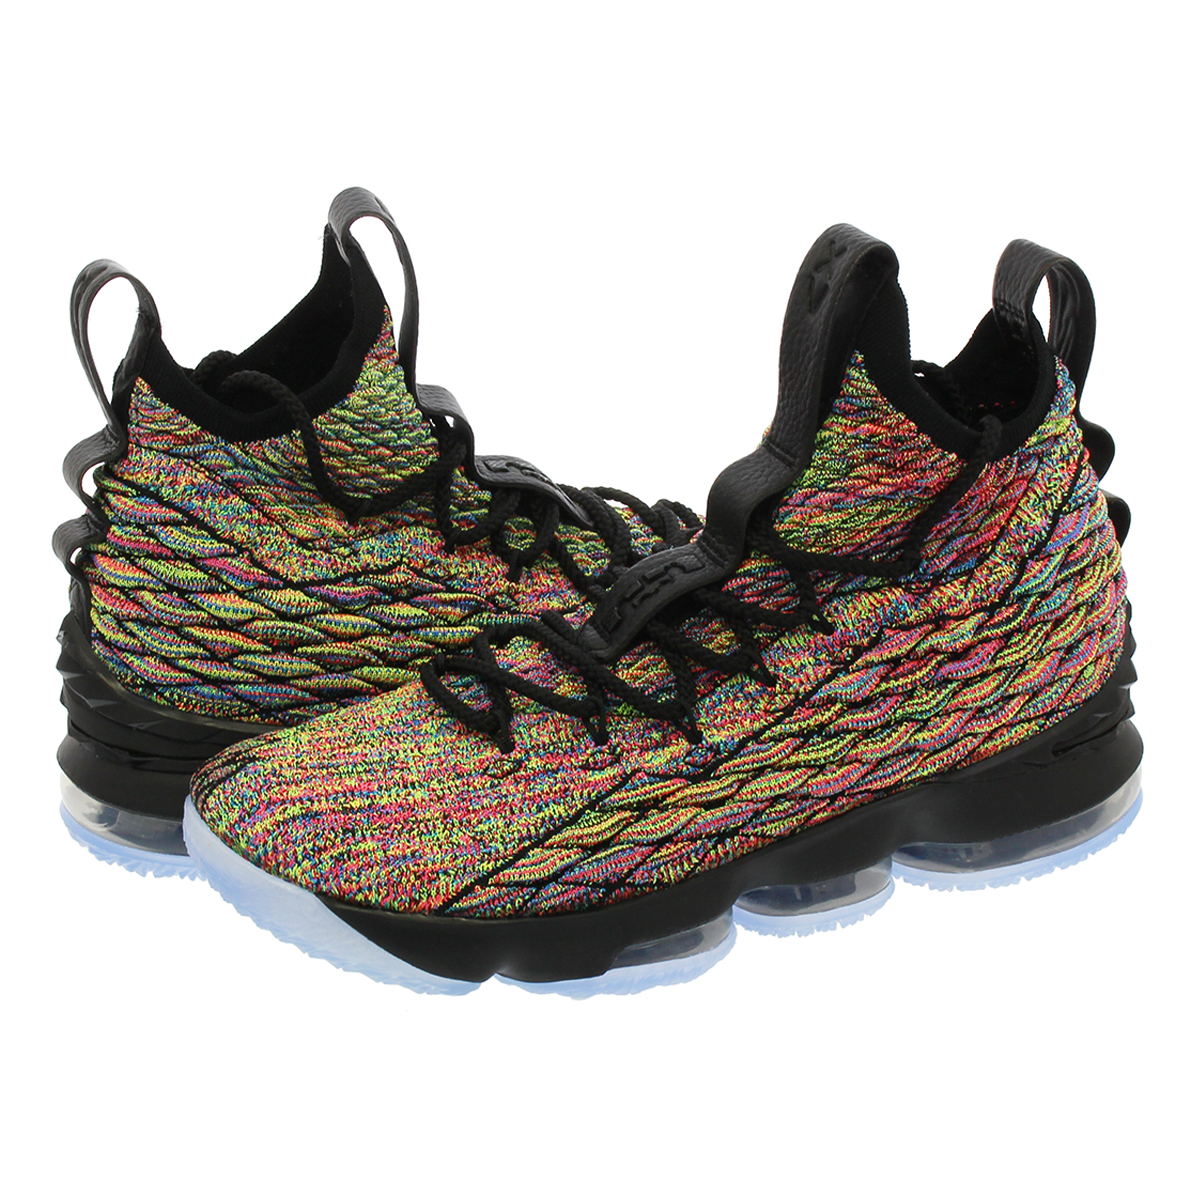 competitive price 1d8f6 ad483 NIKE LEBRON 15 Nike Revlon 15 BLACK/MULTI COLOR